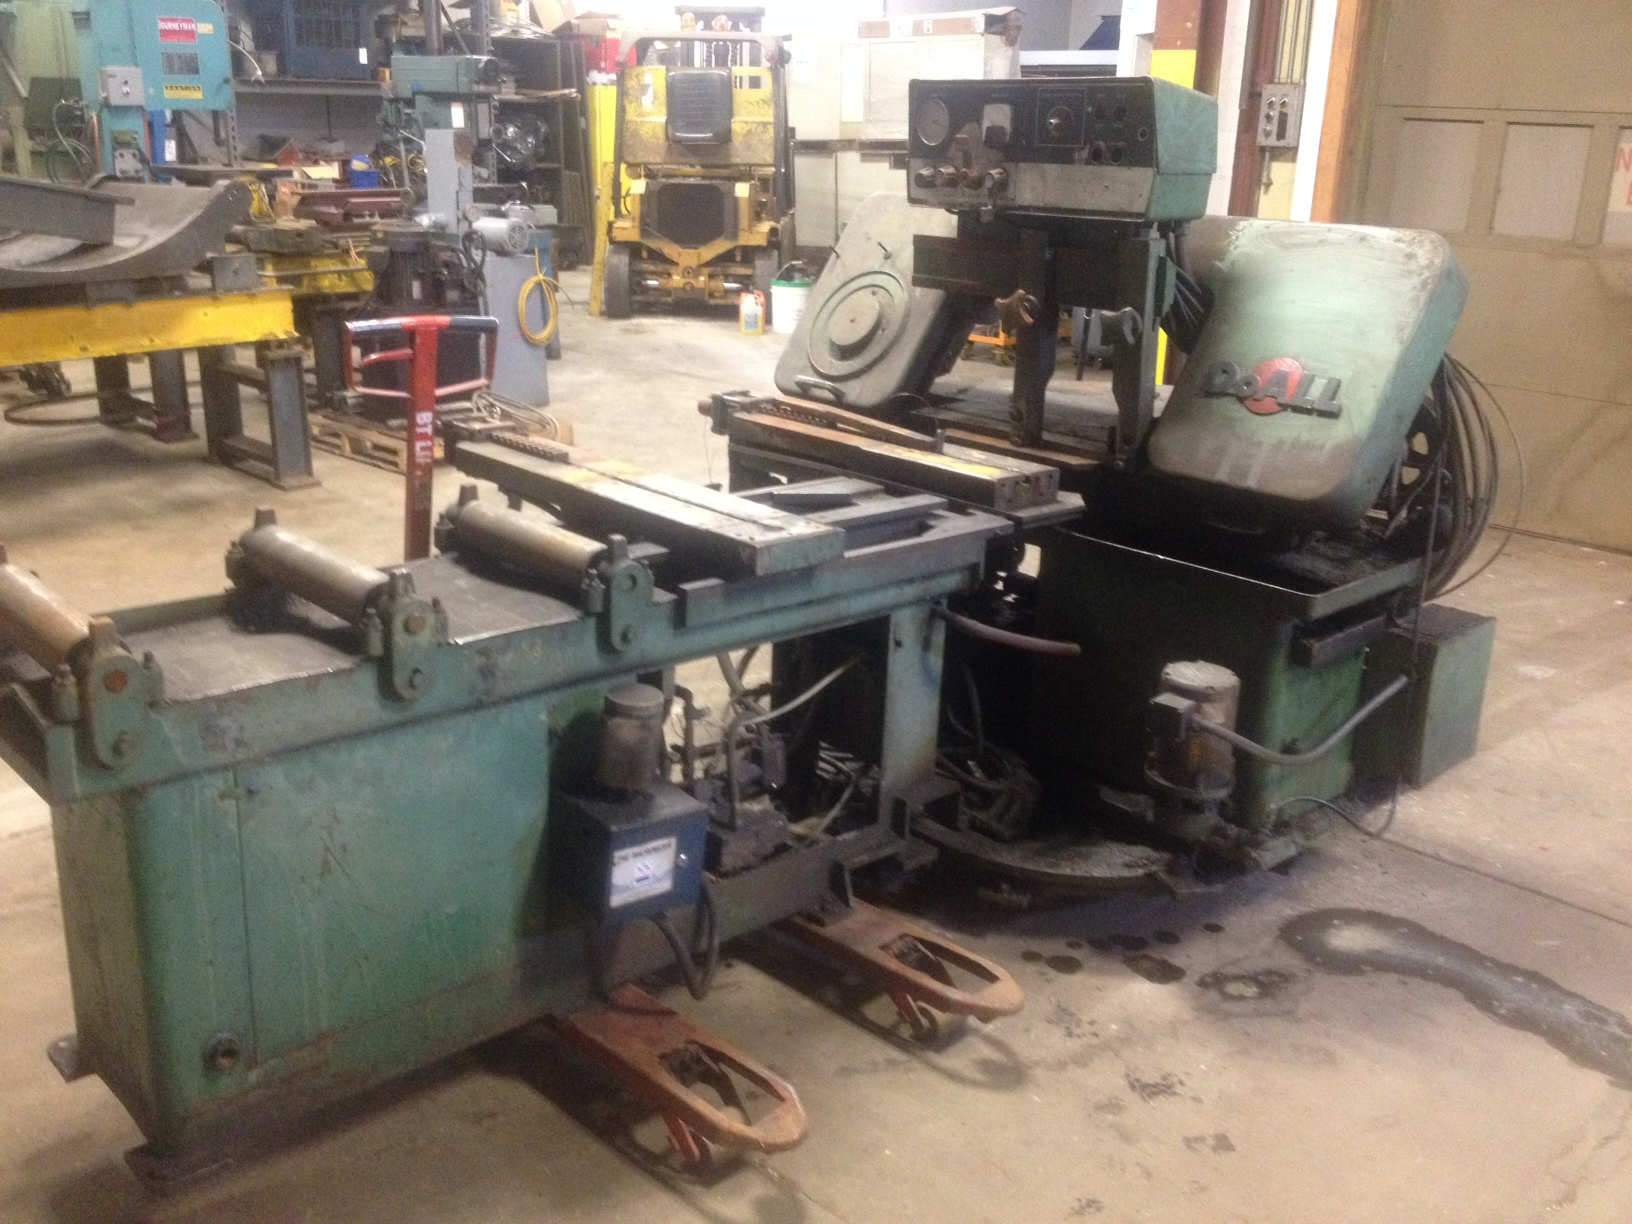 Doall C-170 Horizontal Automatic Bad Saw